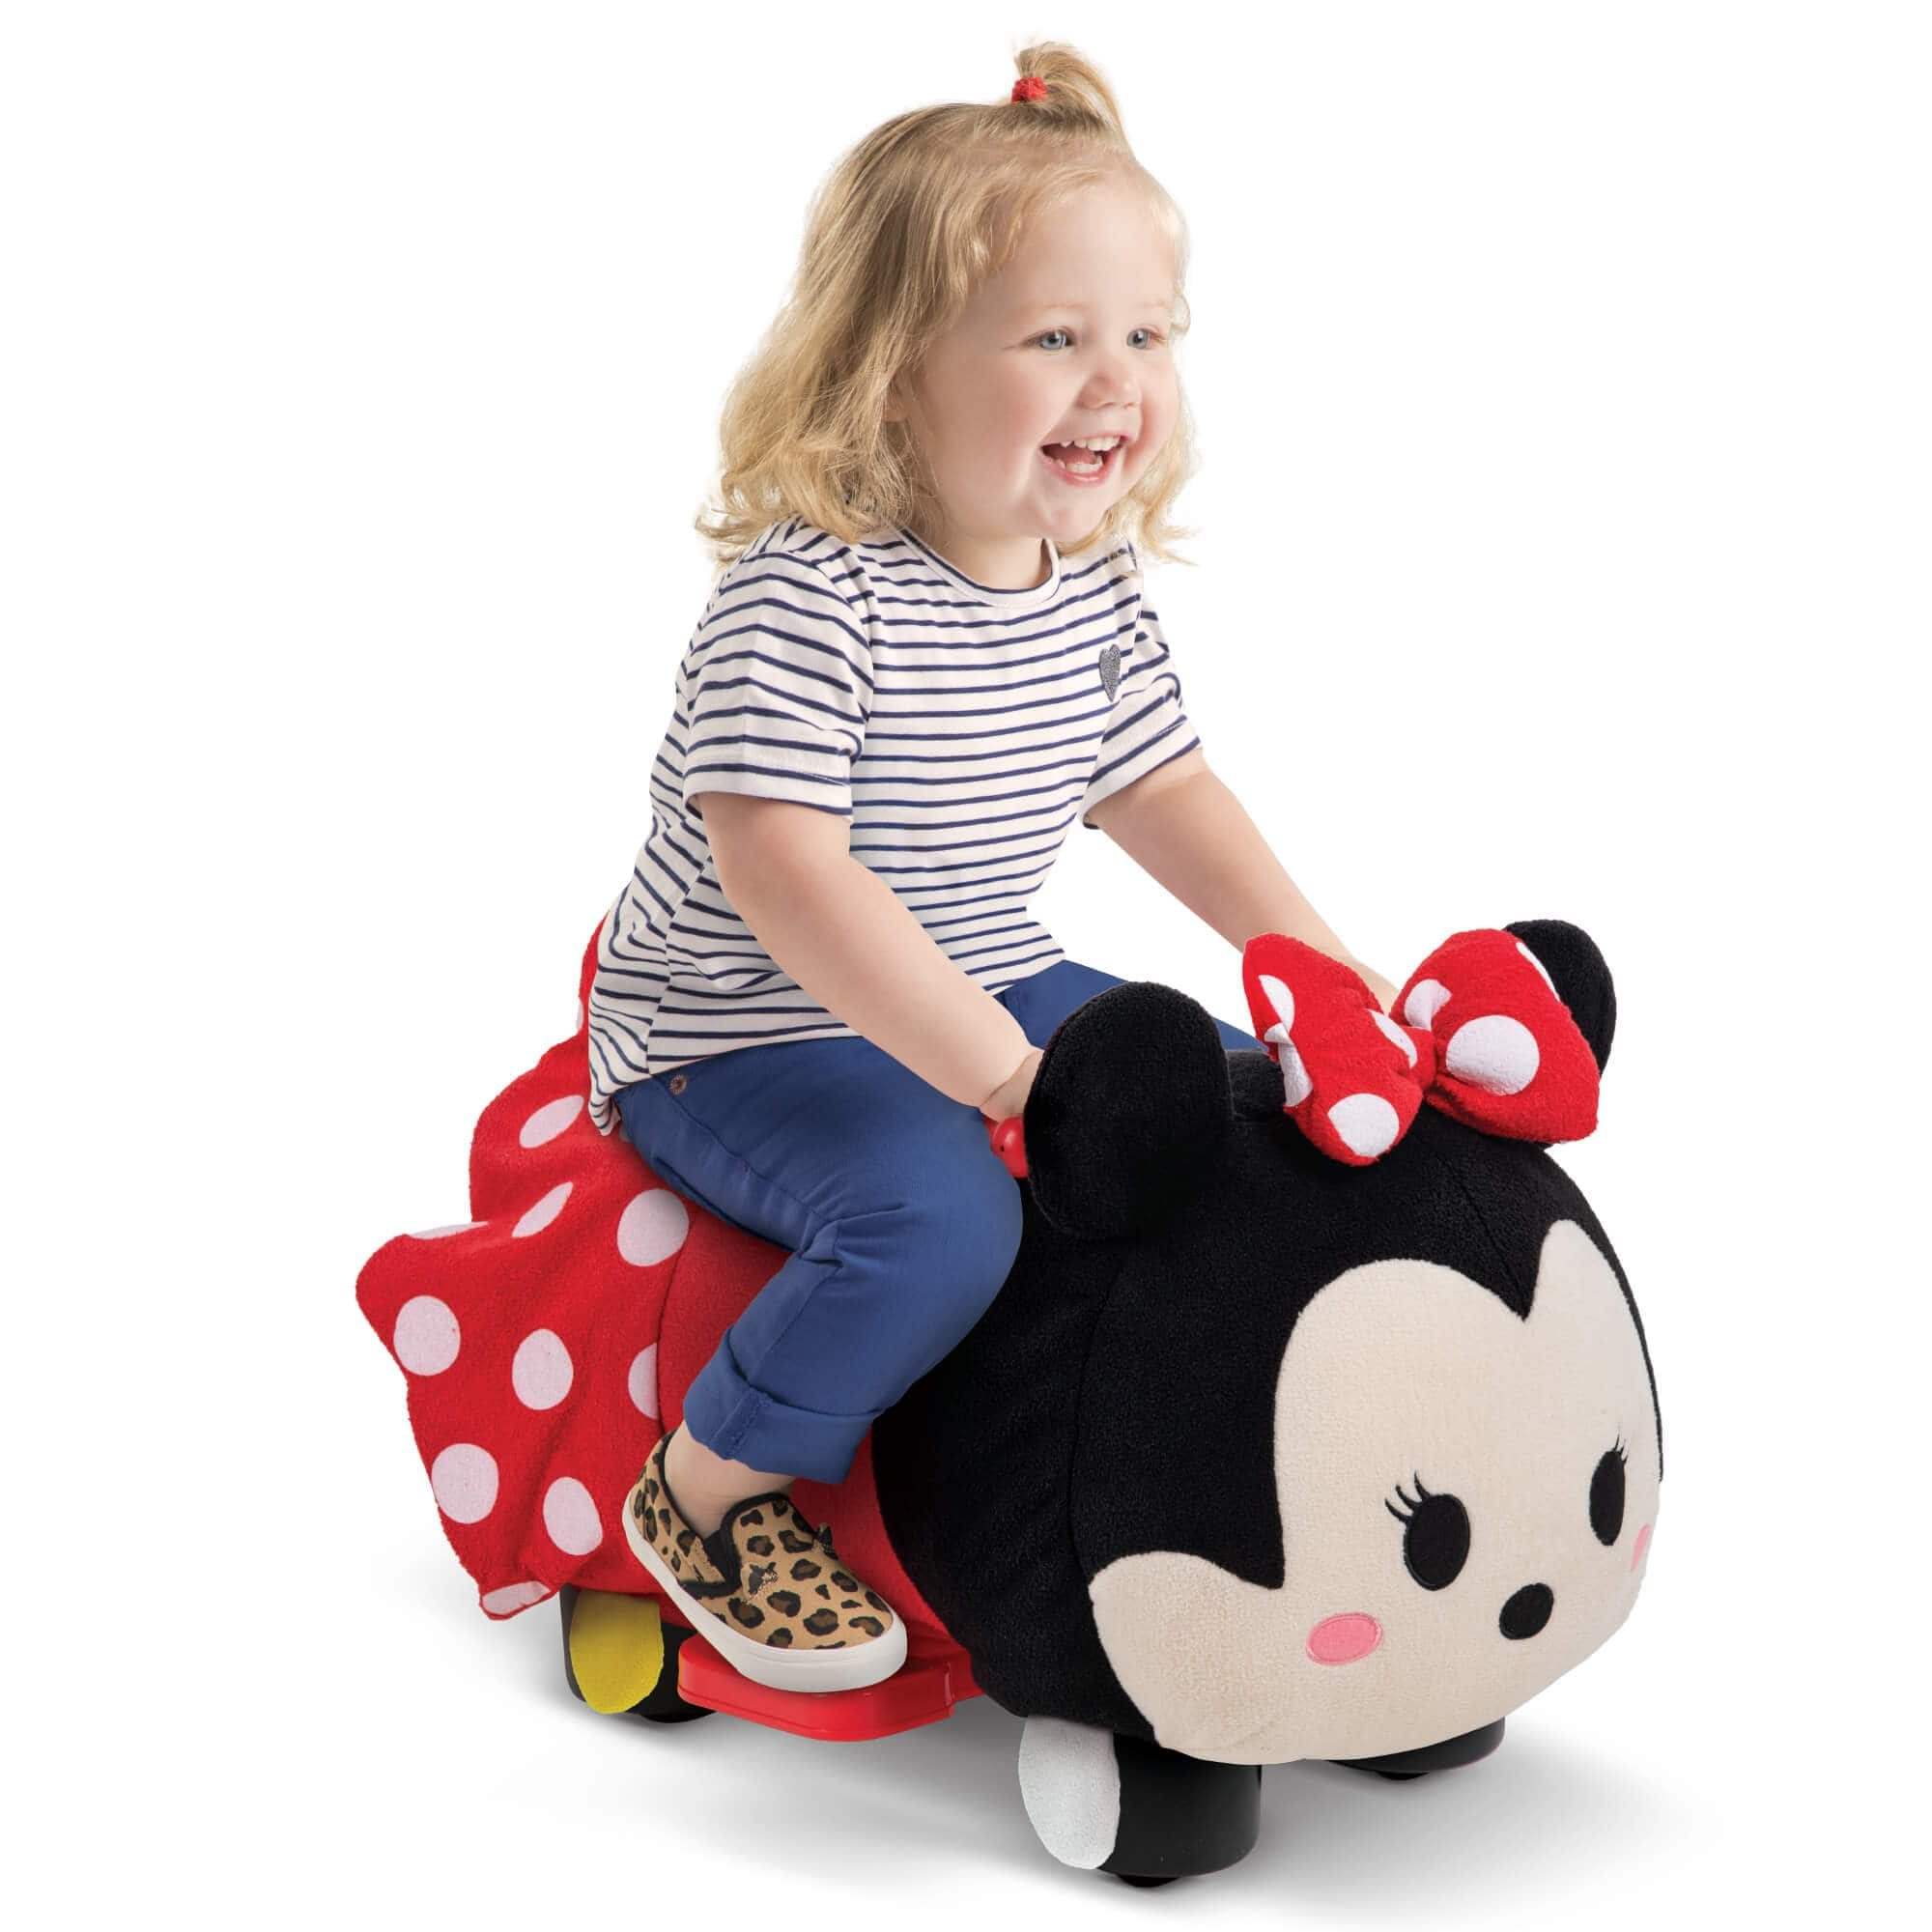 Disney Tsum Tsum Electric Ride-on Plush Toy for Toddlers by Huffy (Minnie Mouse or Winnie the Pooh) $25 + free shipping on $35 or with Walmart+